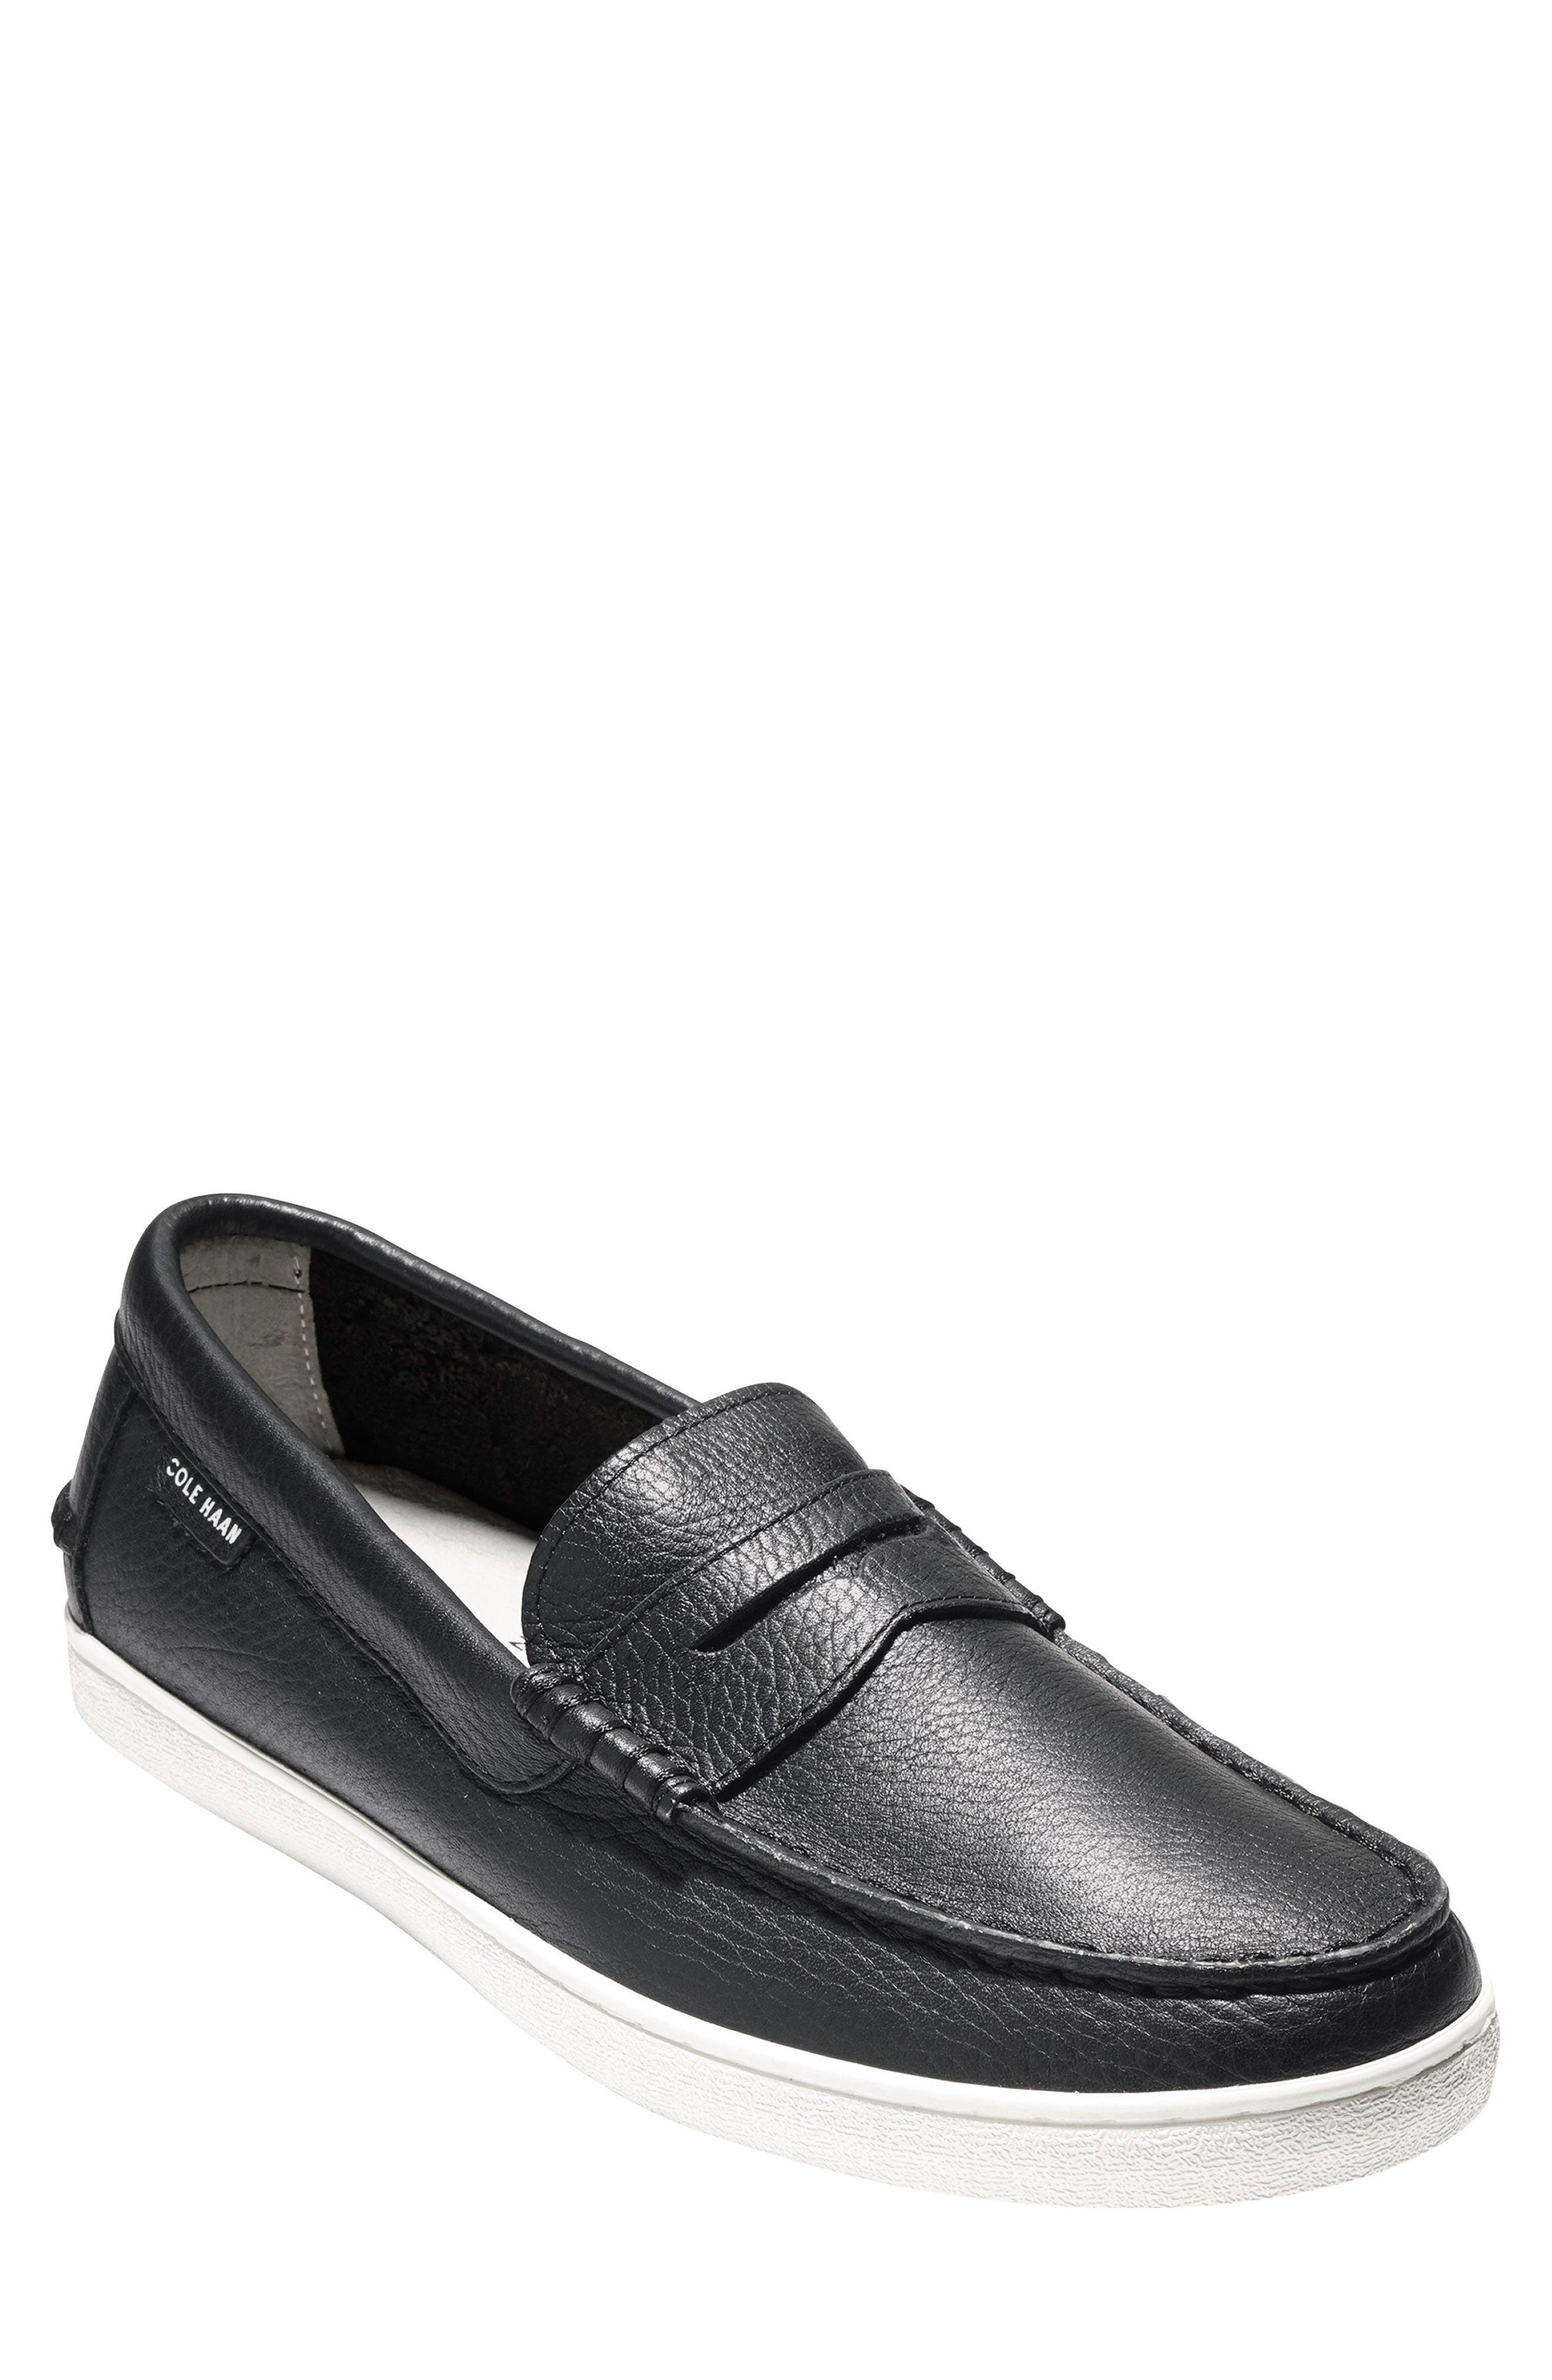 'Pinch' Penny Loafer,                             Alternate thumbnail 2, color,                             001